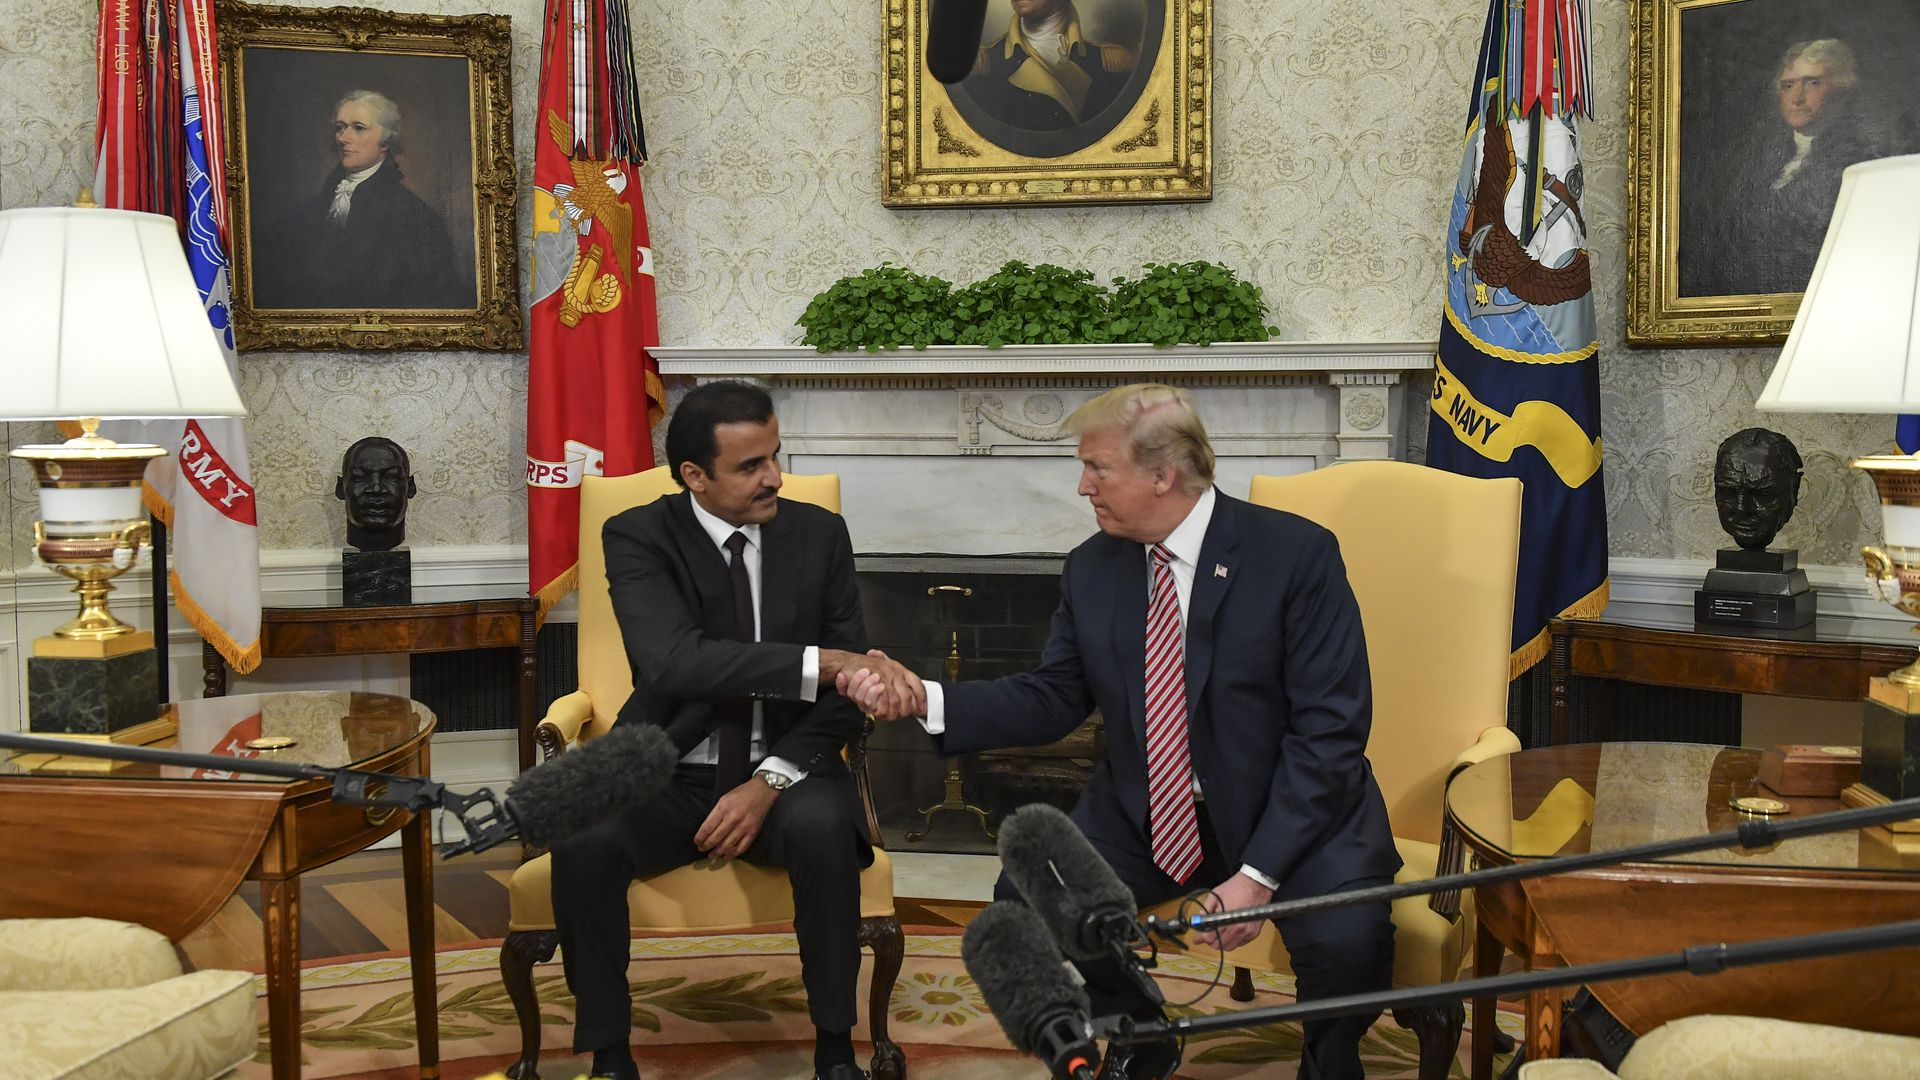 President Trump welcomed the Emir of Qatar to the White House on Tuesday.